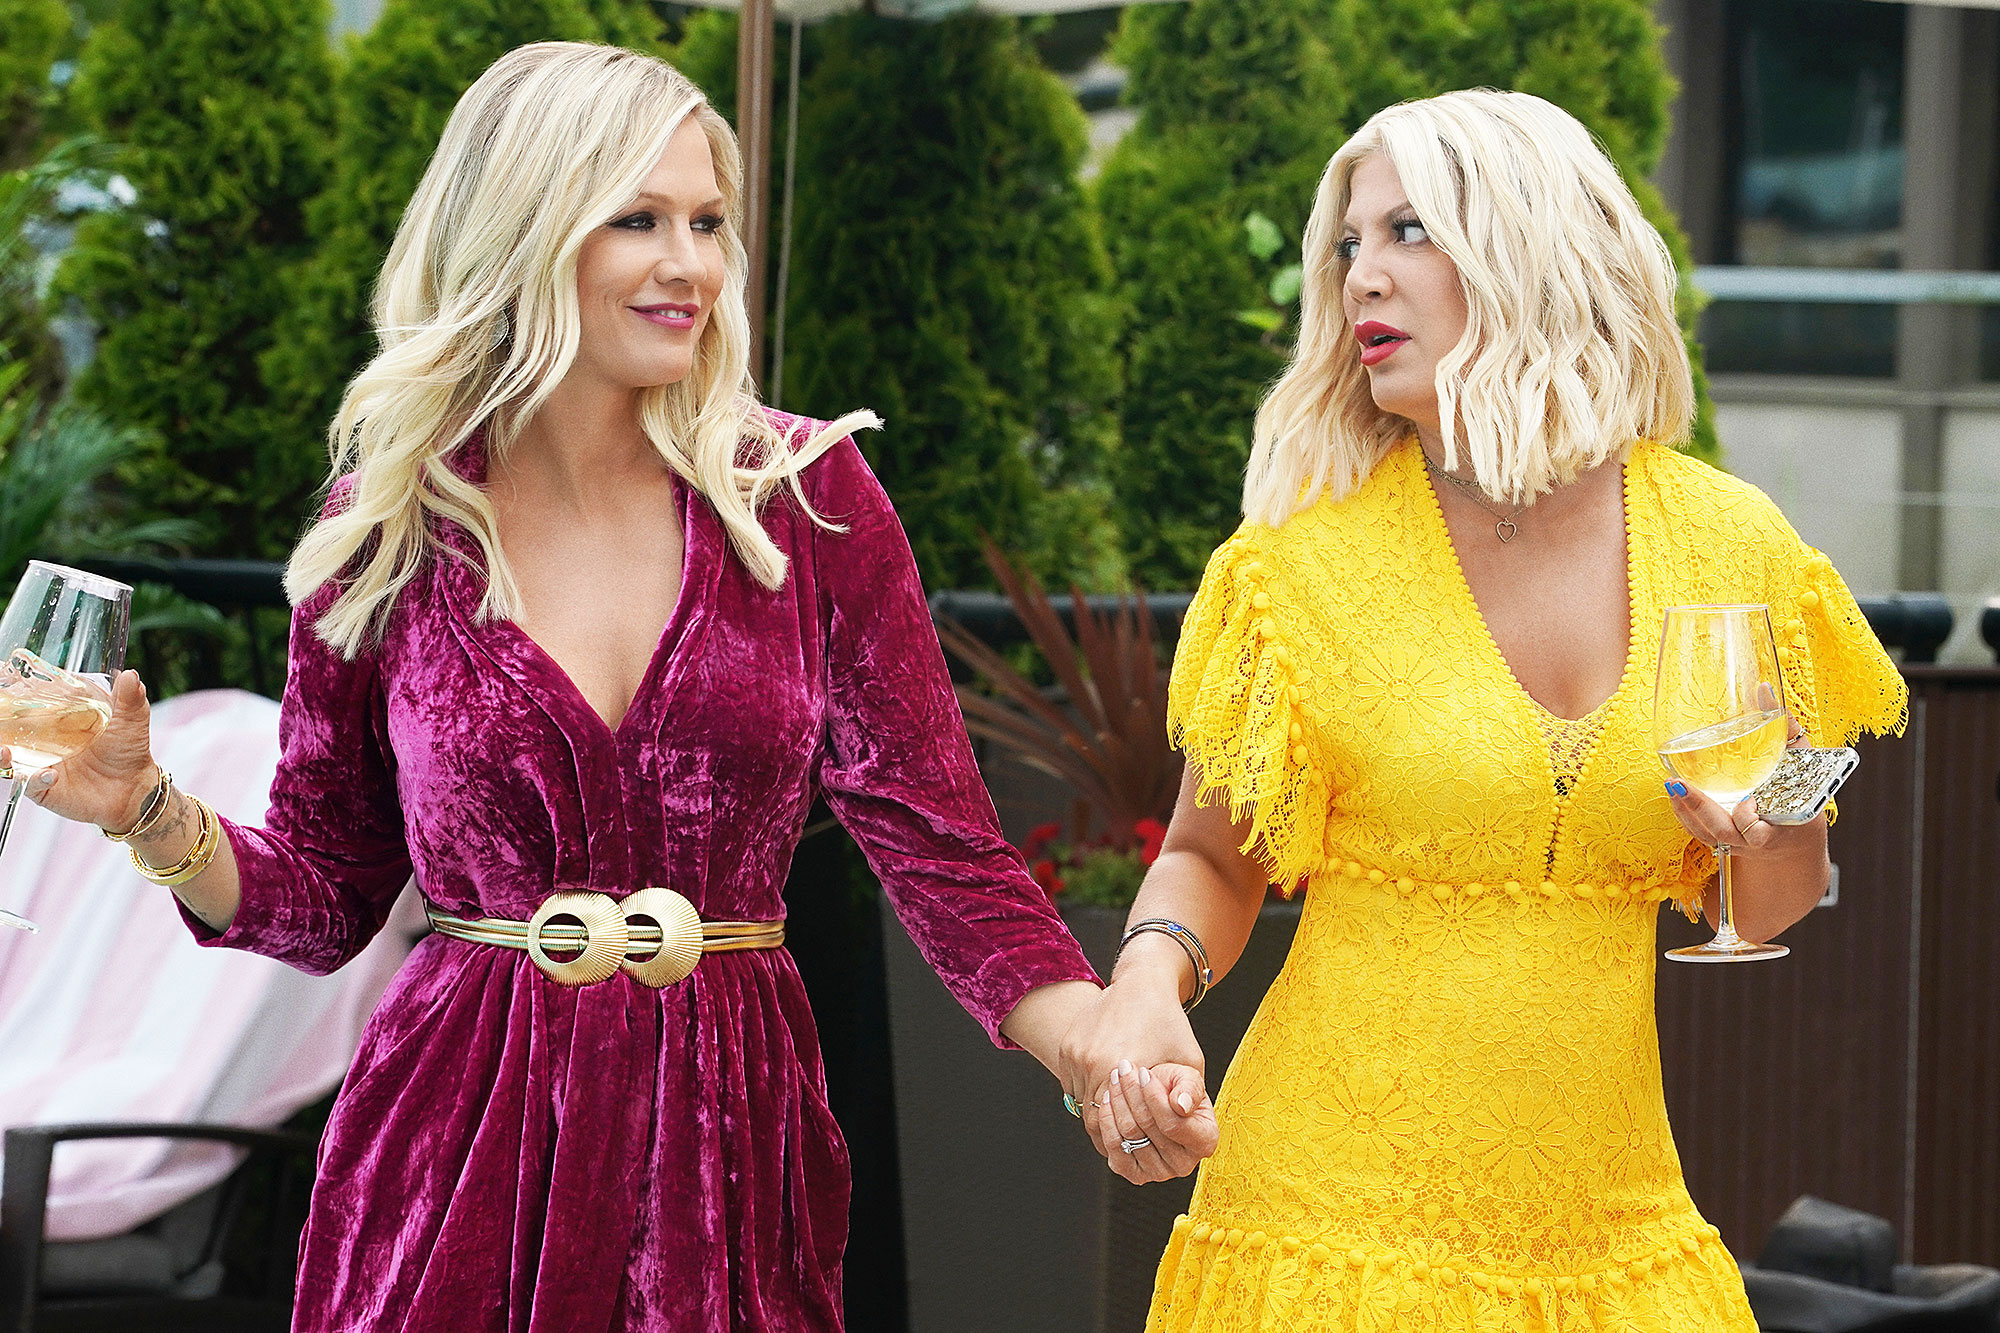 Jennie Garth and Tori Spelling on BH90210 Every Beverly Hills 90210 Reference